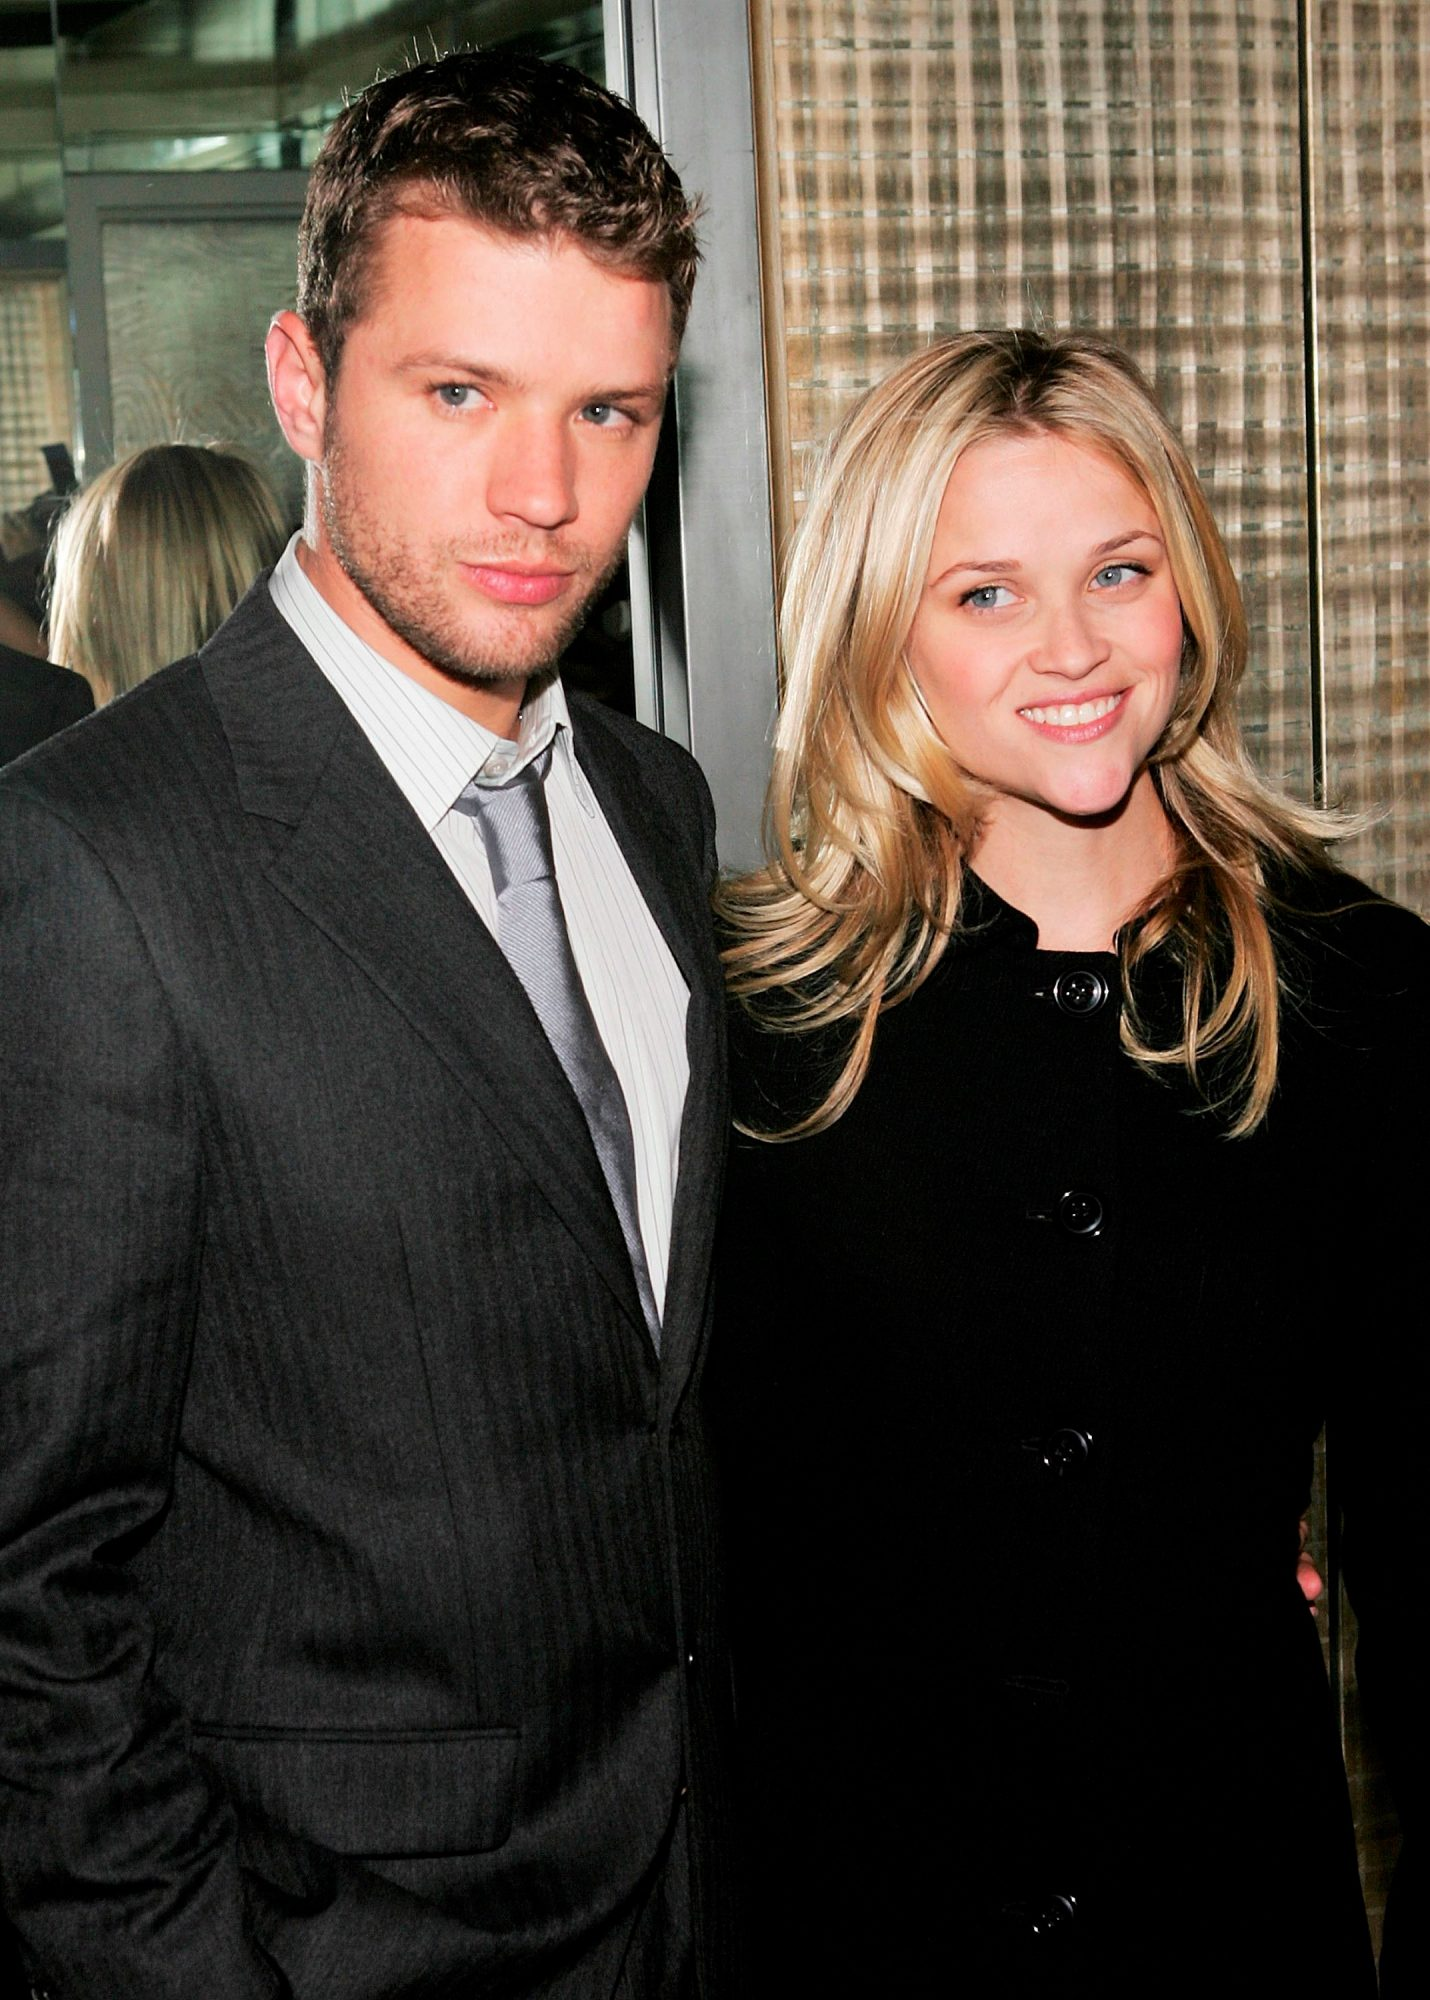 Ryan Phillippe and Reese Witherspoon